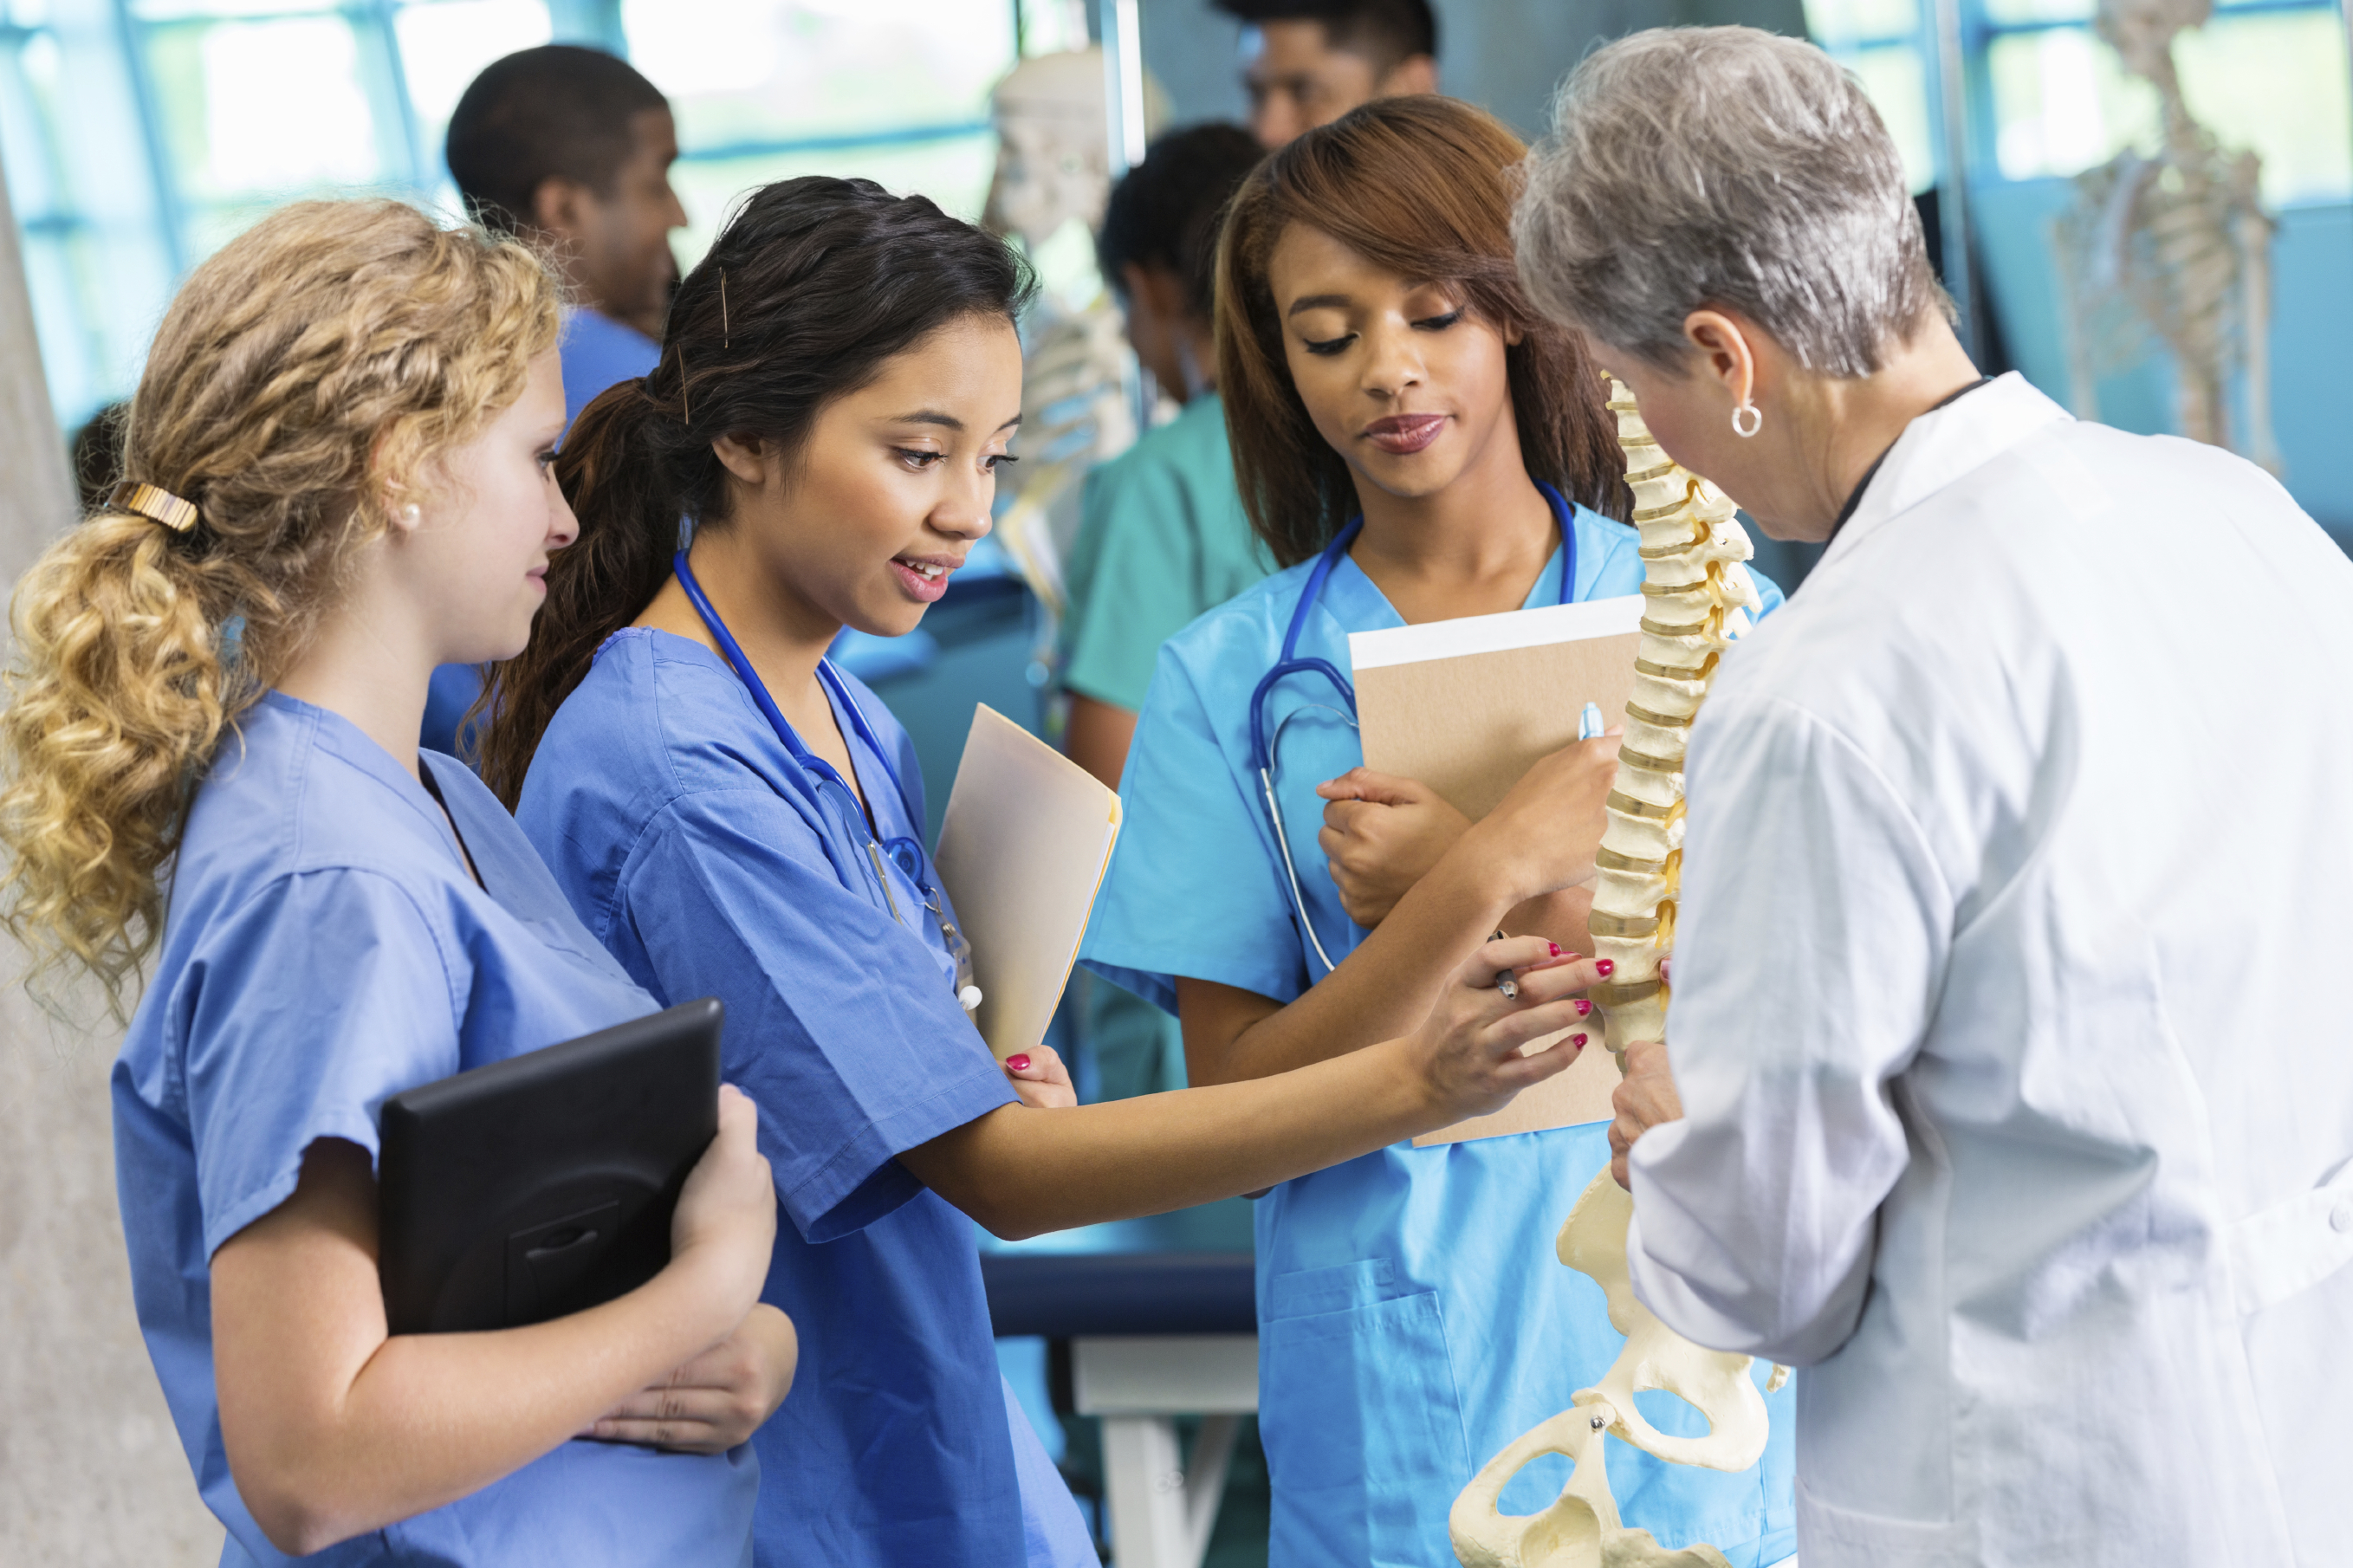 nursing health care and nurses Among multiple healthcare organizations, nurses represent the largest technology user group provide continuing guidance in the development and implementation of information technology and digital solutions for nursing practice and patient care.